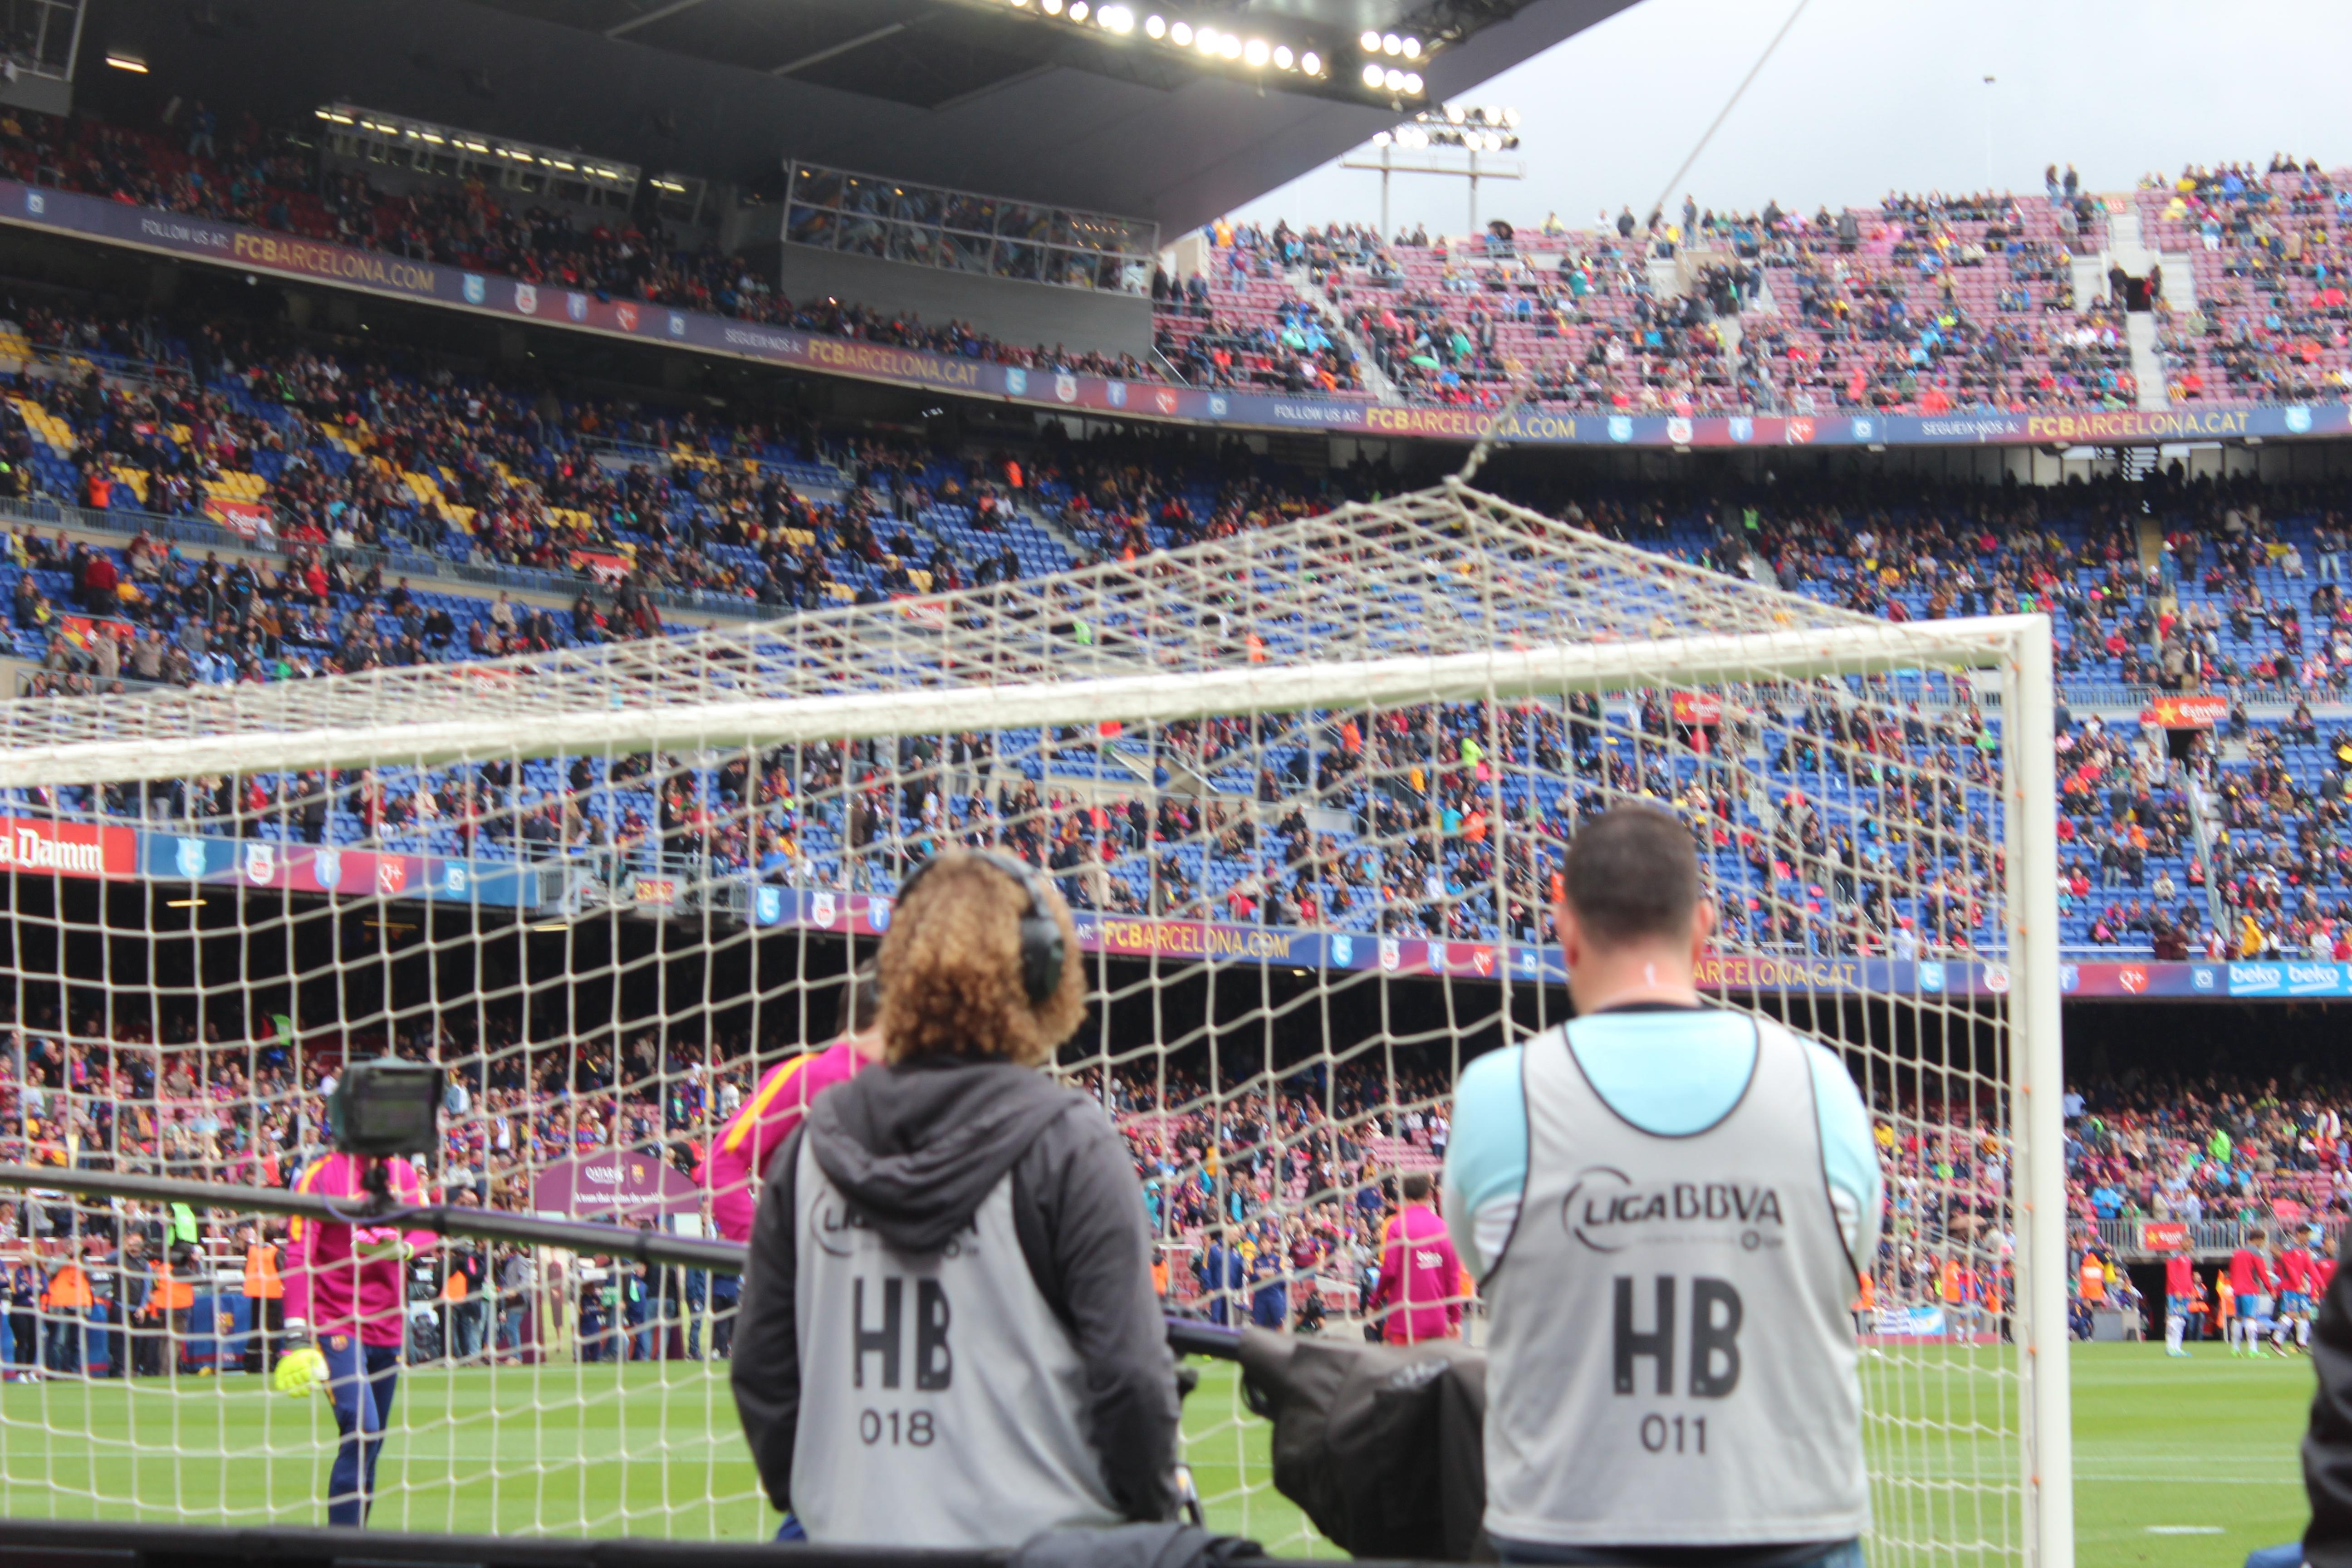 Camp Nou Section 123 Row 2 Seat 12